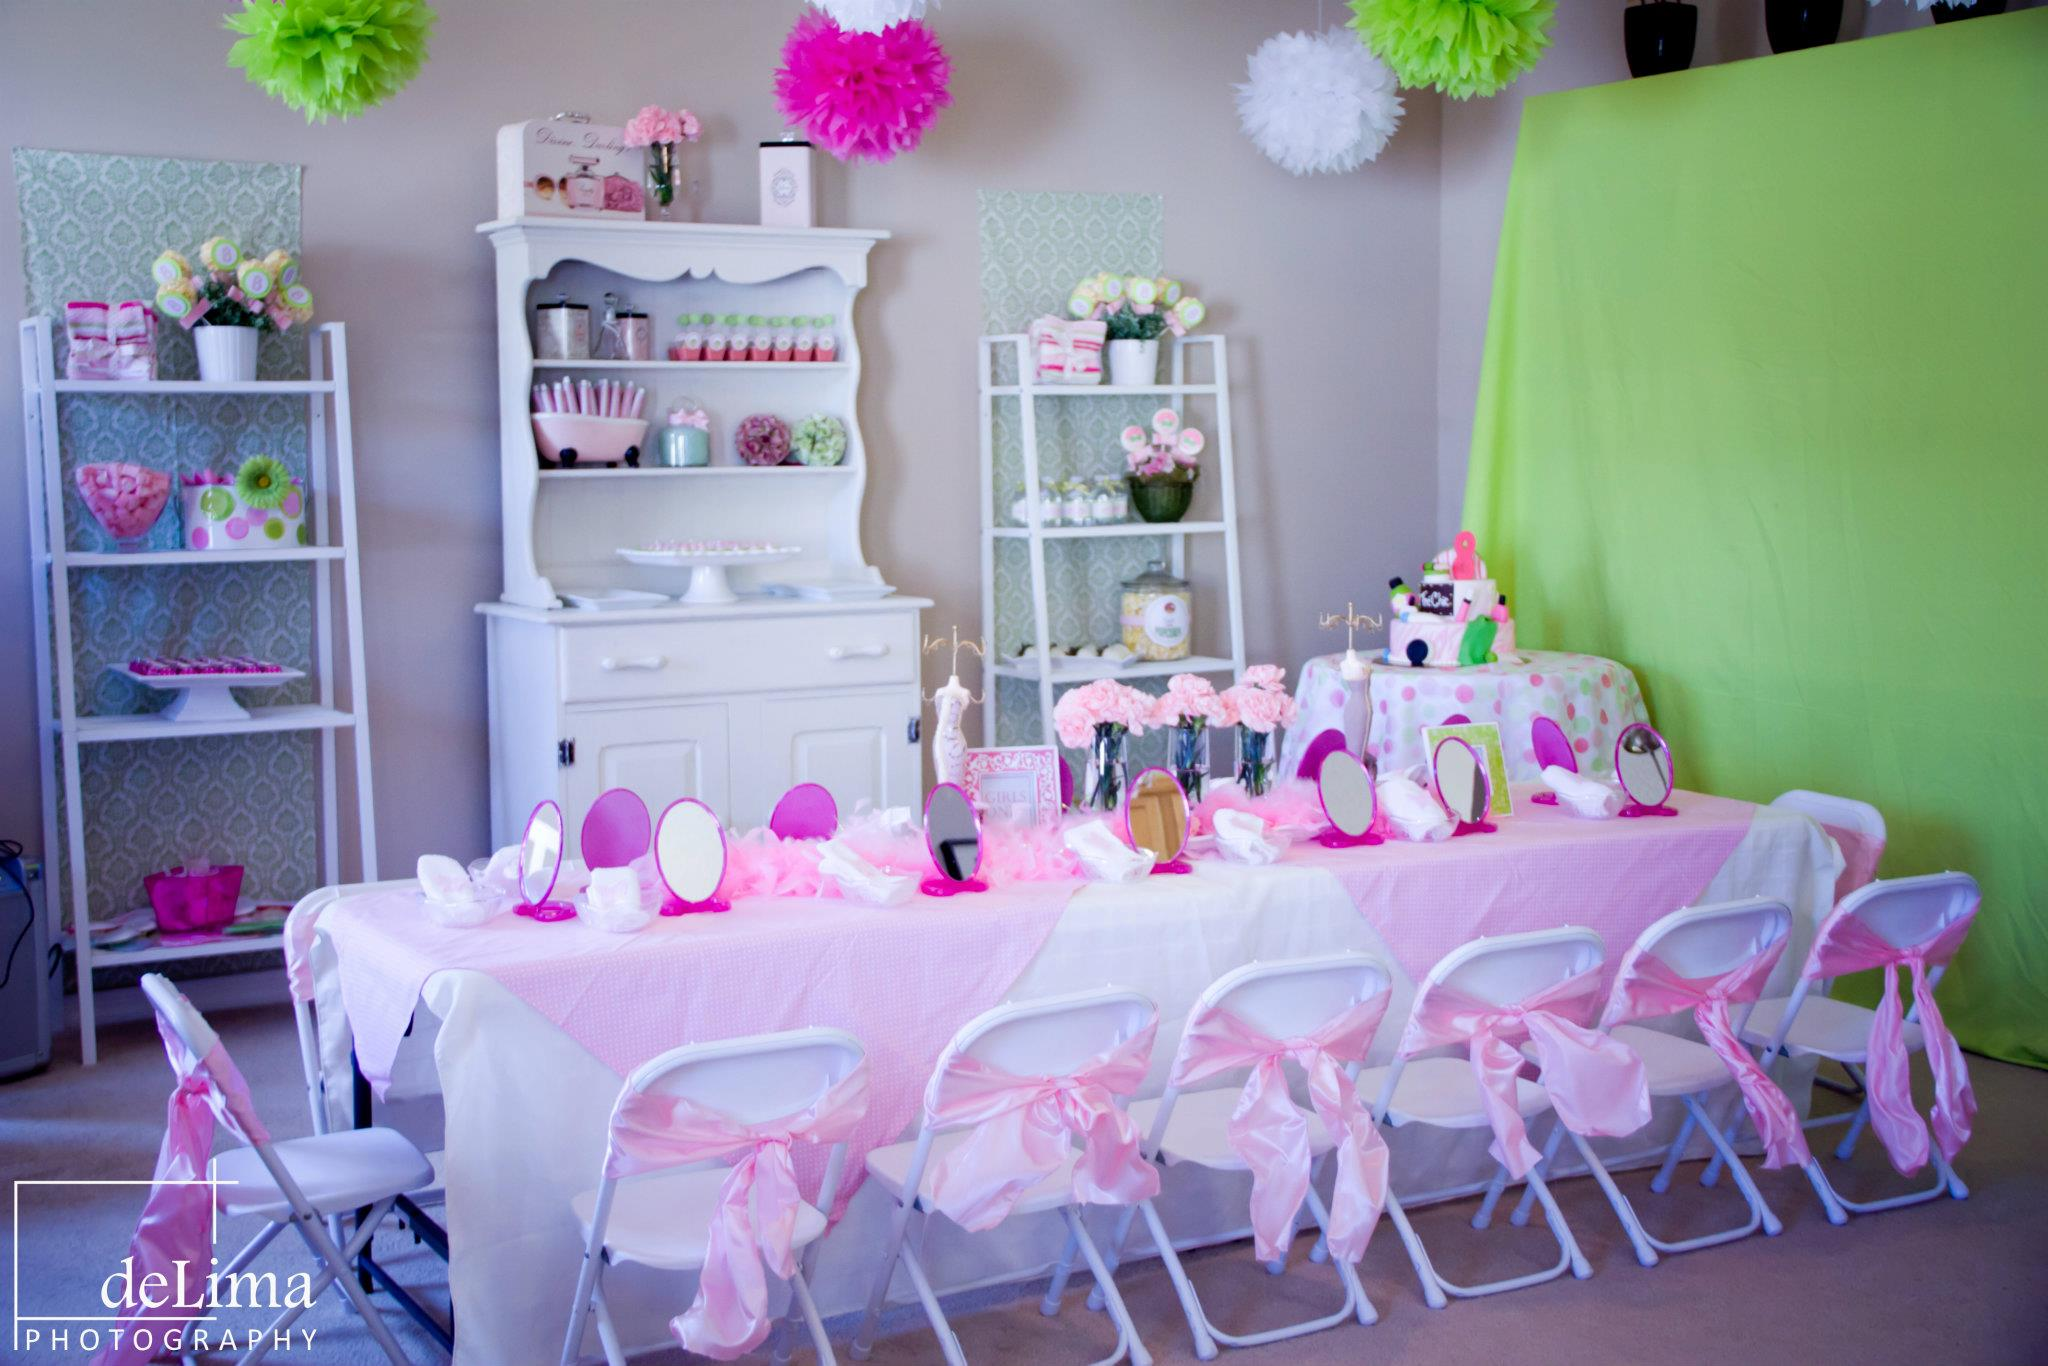 Spa Party Ideas For Girls Hippojoy39s Blog